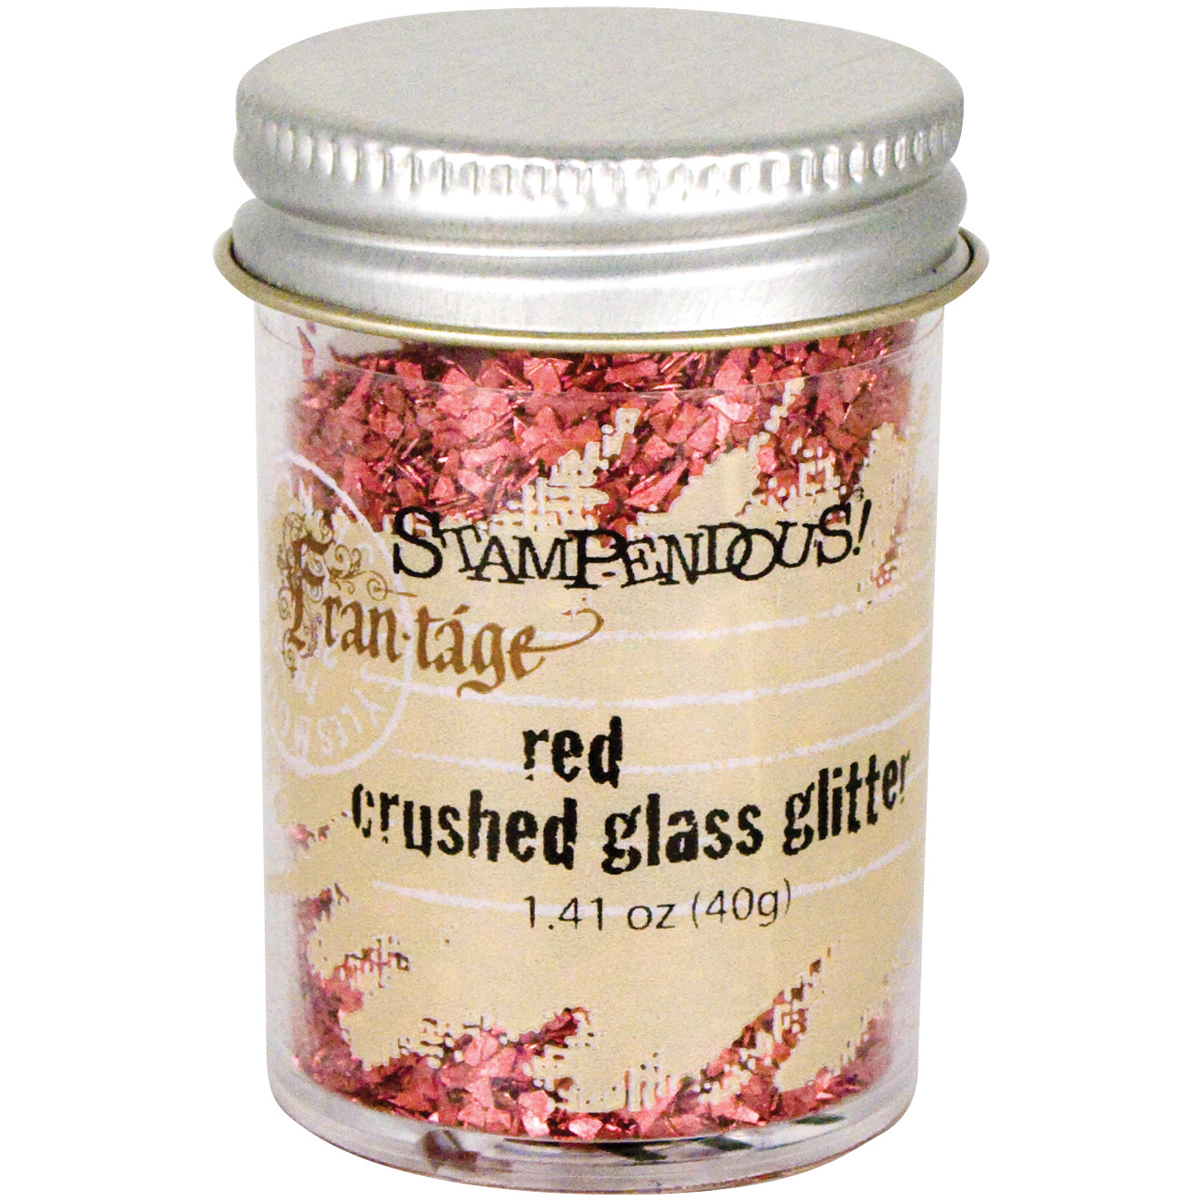 Crushed Glass Glitter Red